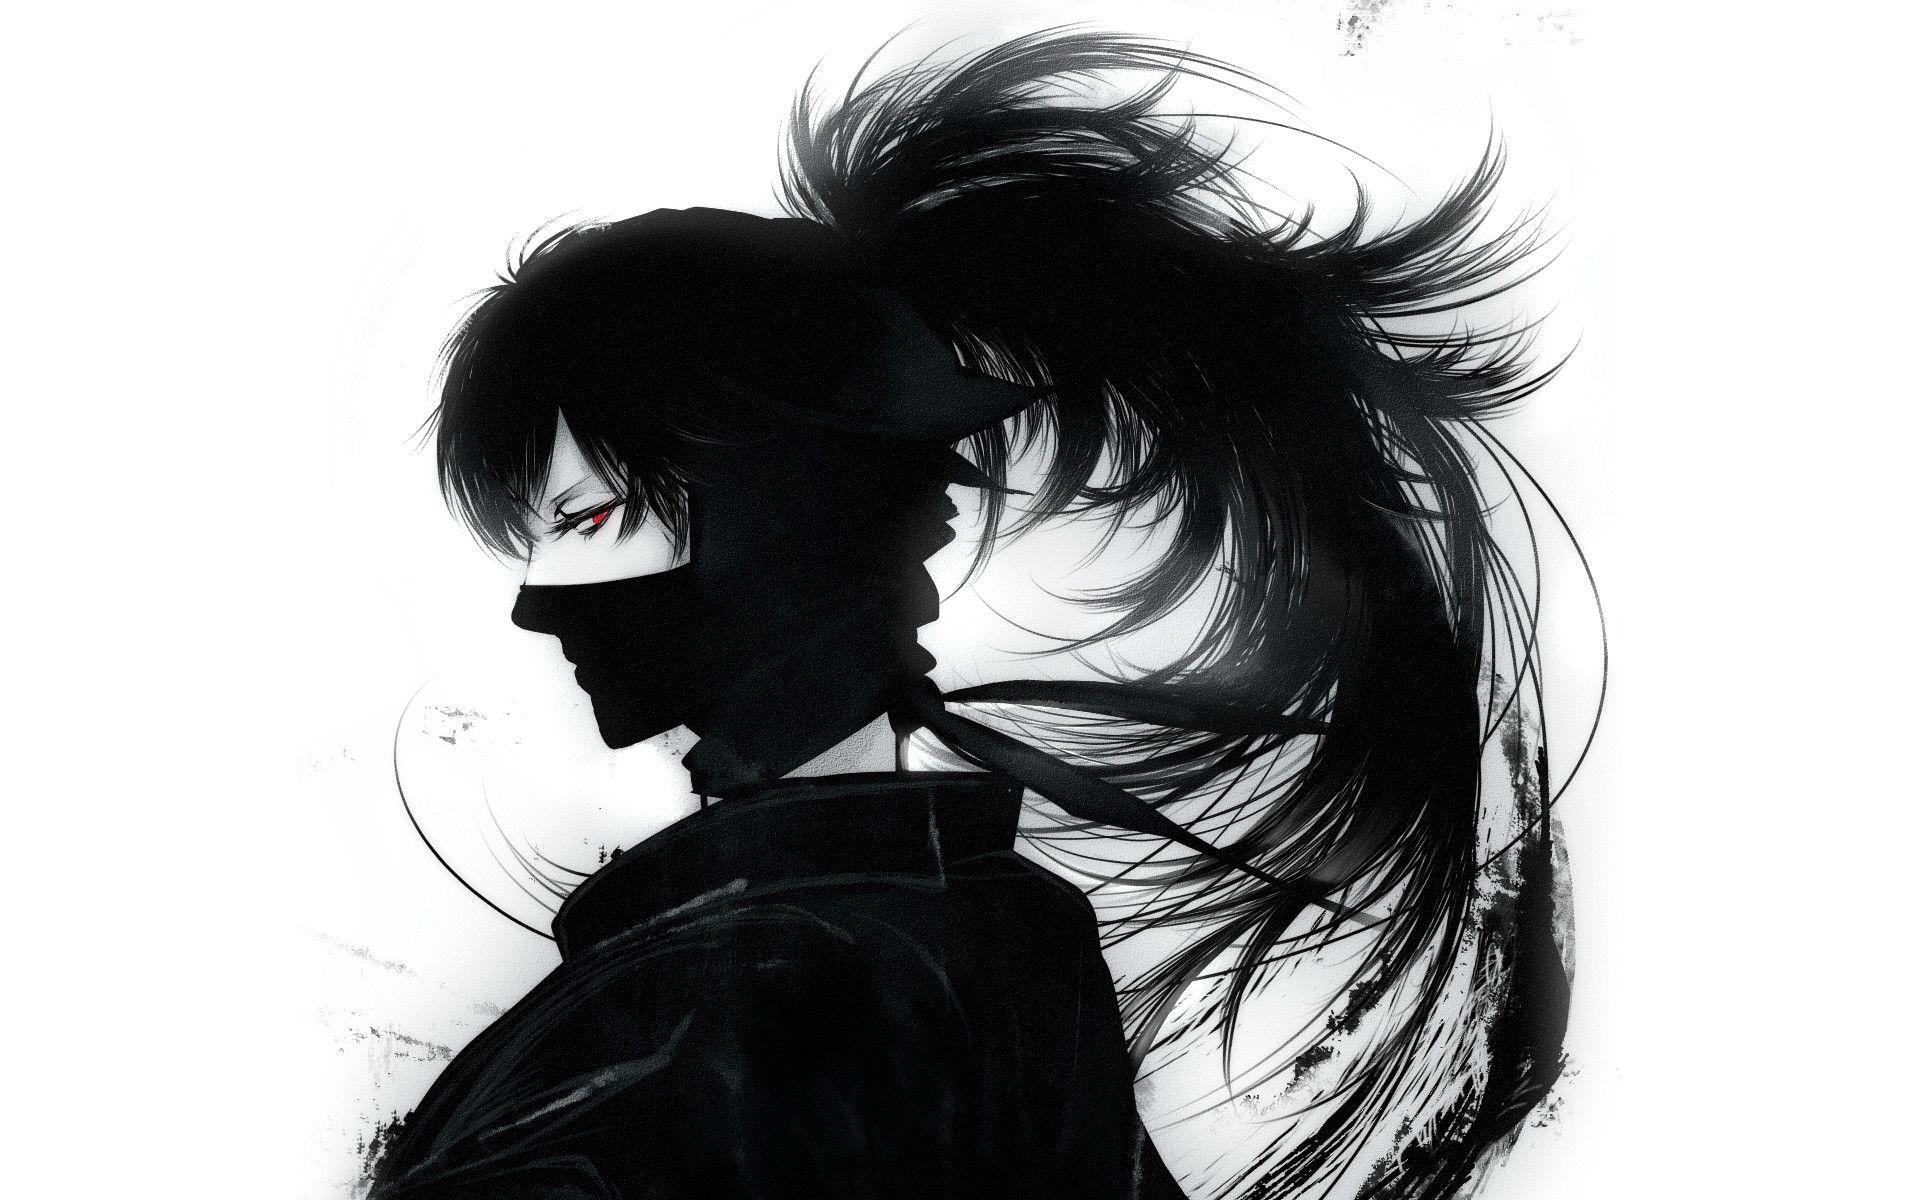 Anime ninja wallpapers wallpaper cave - Sketch anime wallpaper ...